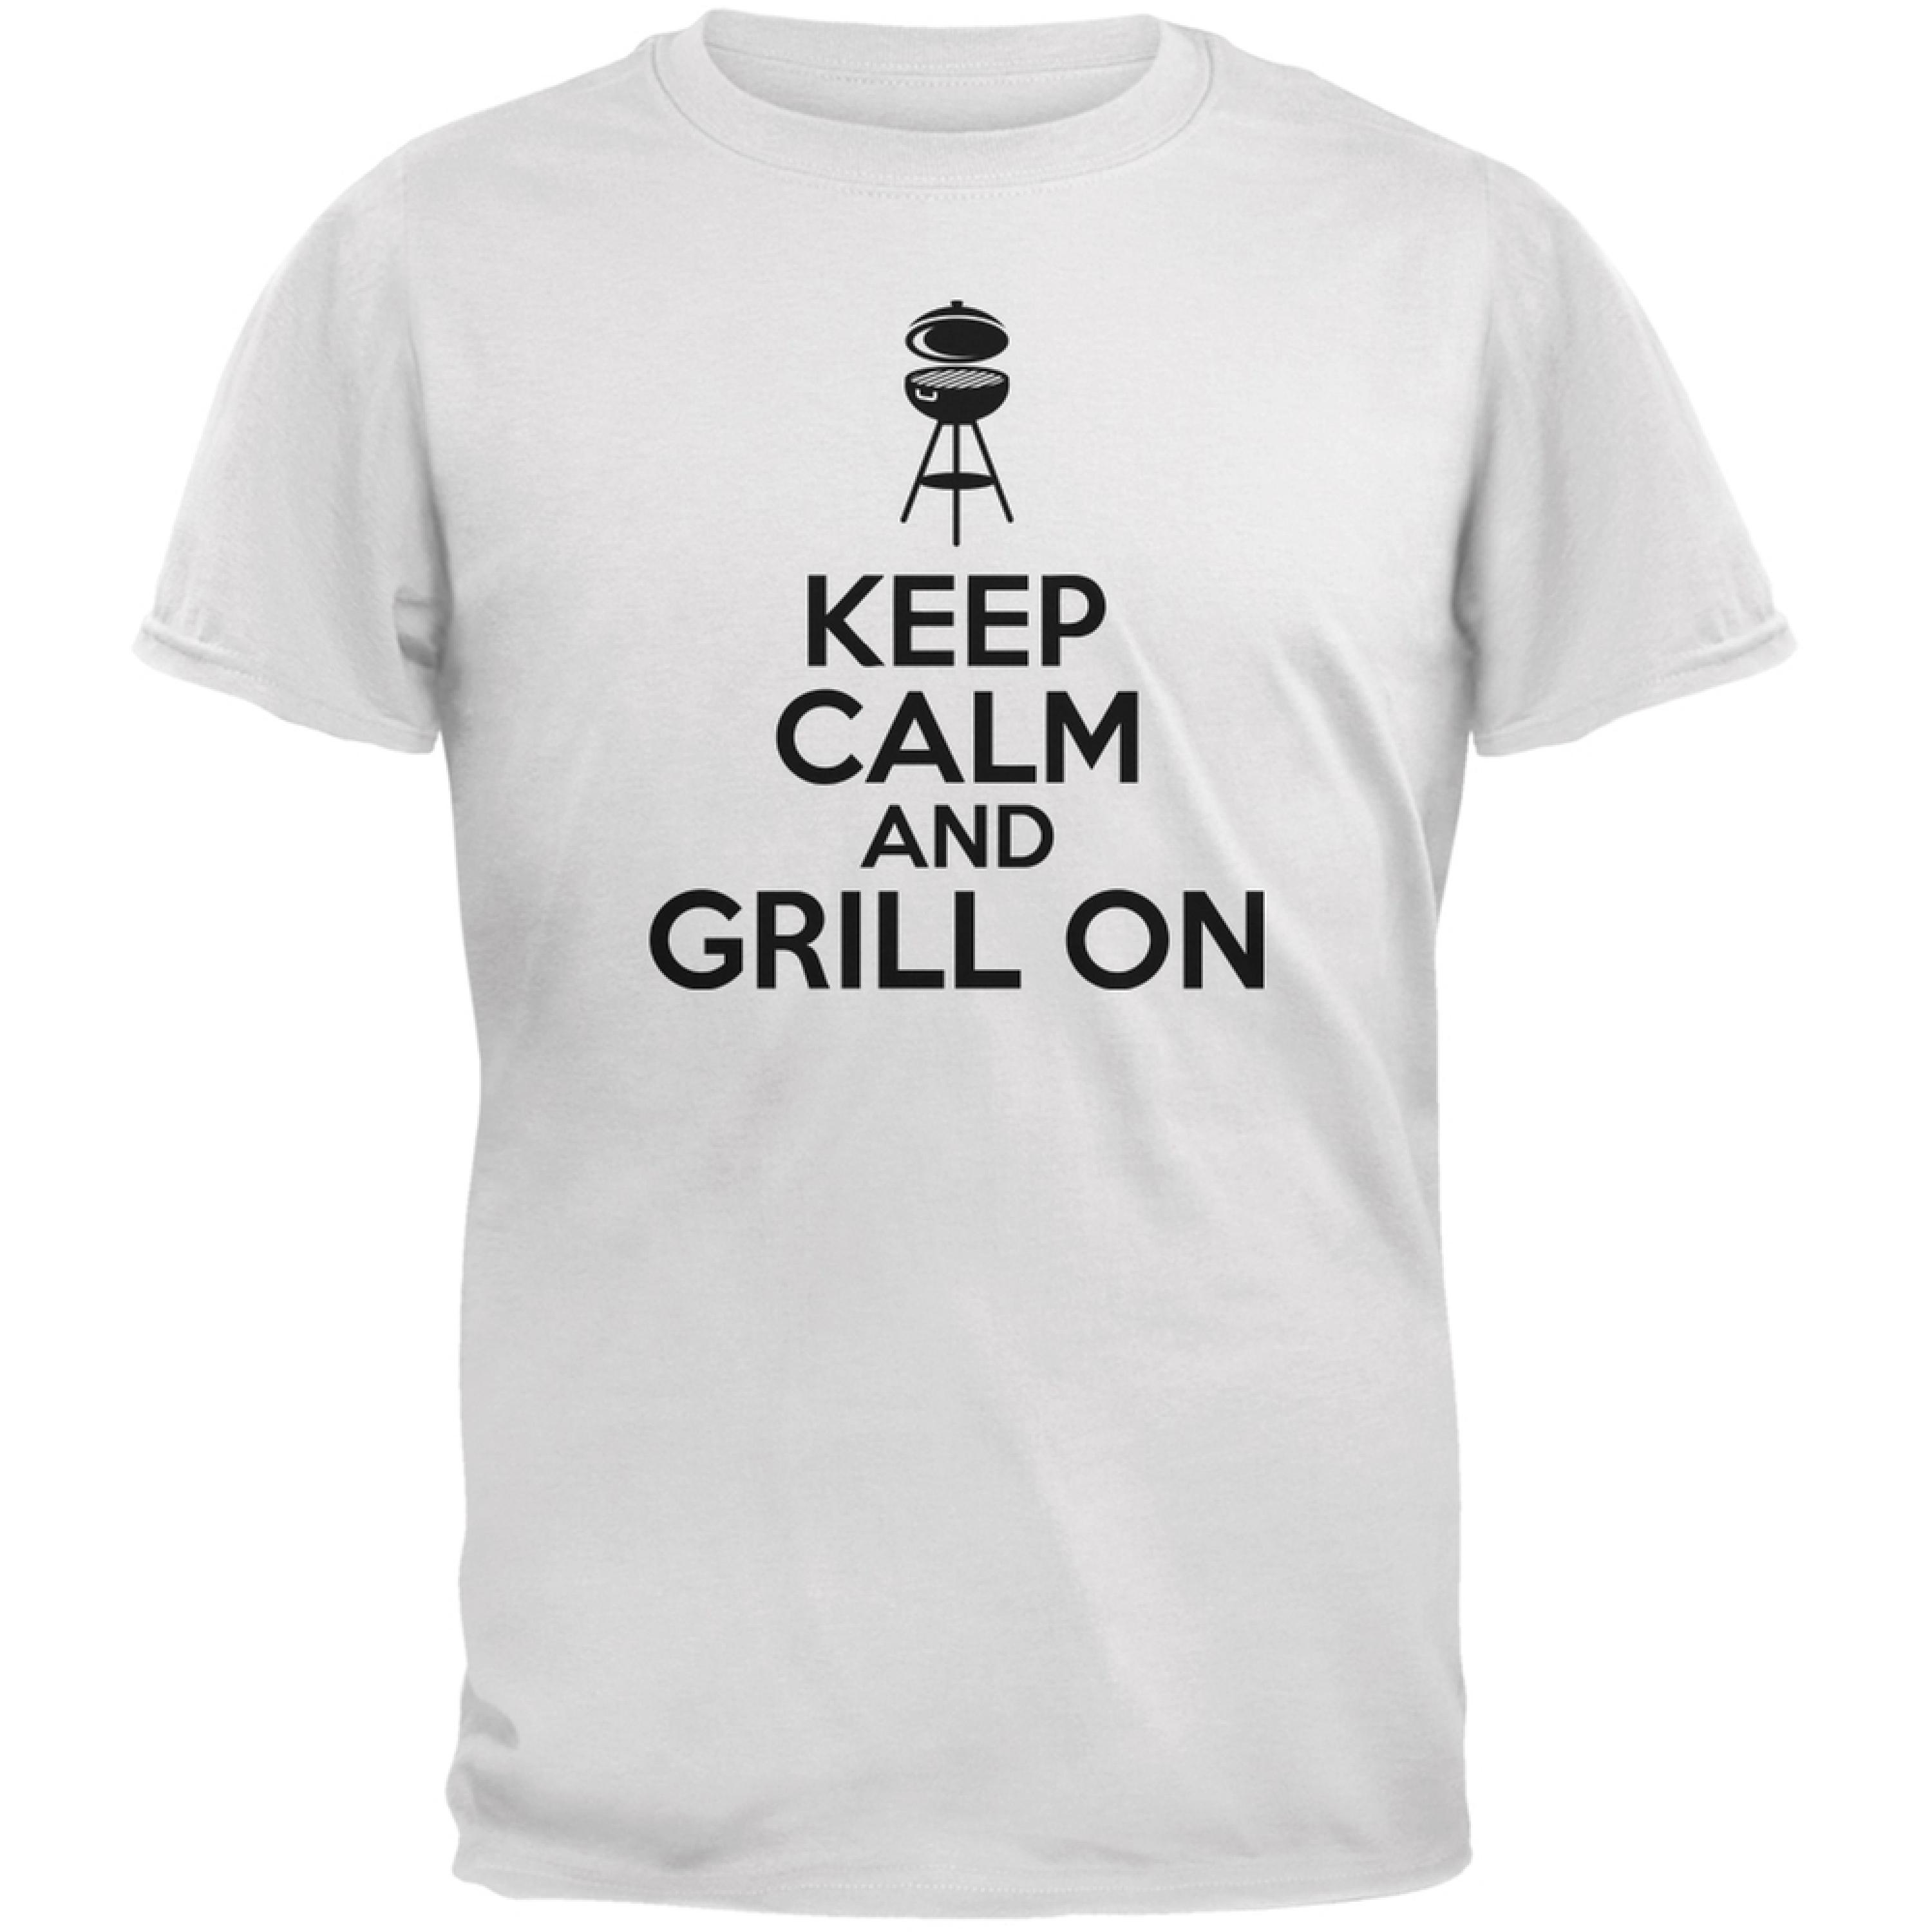 Keep Calm Grill On White Adult T-Shirt